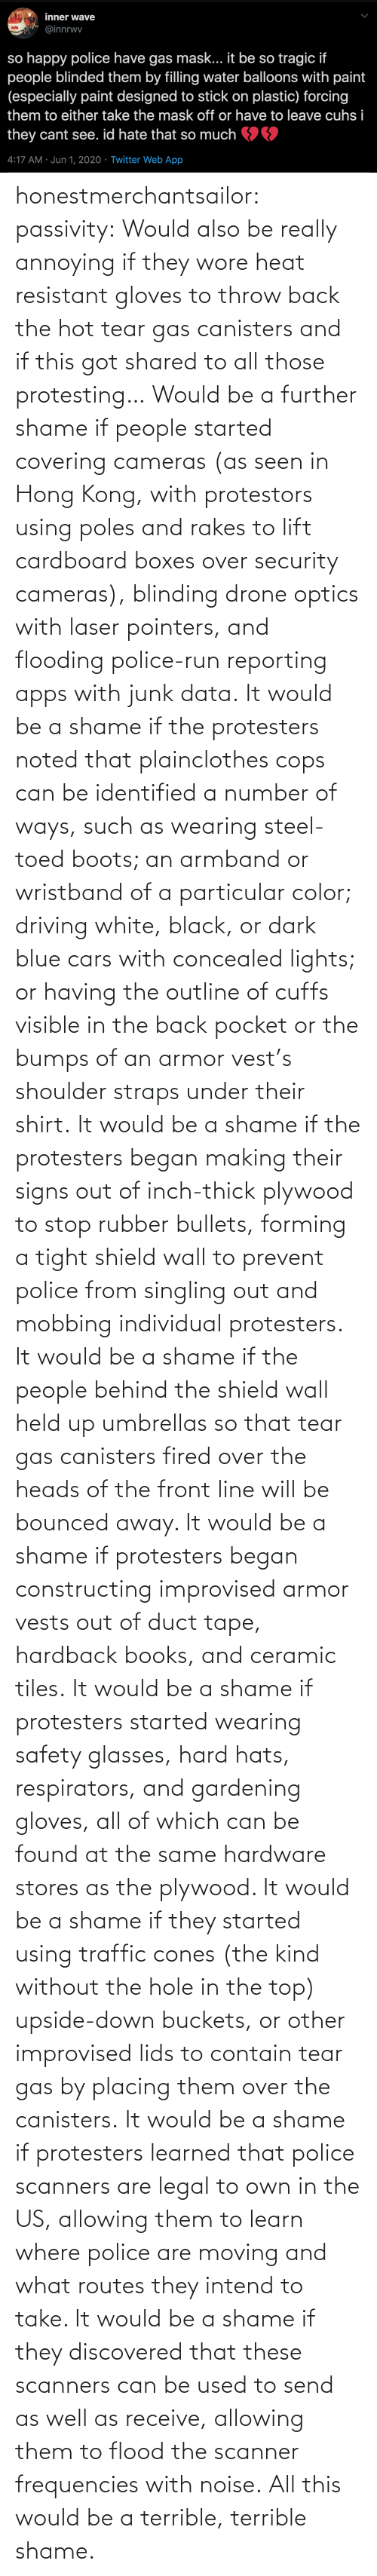 hot: honestmerchantsailor: passivity: Would also be really annoying if they wore heat resistant gloves to throw back the hot tear gas canisters and if this got shared to all those protesting… Would be a further shame if people started covering cameras (as seen in Hong Kong, with protestors using poles and rakes to lift cardboard boxes over security cameras), blinding drone optics with laser pointers, and flooding police-run reporting apps with junk data. It would be a shame if the protesters noted that plainclothes cops can be identified a number of ways, such as wearing steel-toed boots; an armband or wristband of a particular color; driving white, black, or dark blue cars with concealed lights; or having the outline of cuffs visible in the back pocket or the bumps of an armor vest's shoulder straps under their shirt. It would be a shame if the protesters began making their signs out of inch-thick plywood to stop rubber bullets, forming a tight shield wall to prevent police from singling out and mobbing individual protesters. It would be a shame if the people behind the shield wall held up umbrellas so that tear gas canisters fired over the heads of the front line will be bounced away. It would be a shame if protesters began constructing improvised armor vests out of duct tape, hardback books, and ceramic tiles. It would be a shame if protesters started wearing safety glasses, hard hats, respirators, and gardening gloves, all of which can be found at the same hardware stores as the plywood. It would be a shame if they started using traffic cones (the kind without the hole in the top) upside-down buckets, or other improvised lids to contain tear gas by placing them over the canisters. It would be a shame if protesters learned that police scanners are legal to own in the US, allowing them to learn where police are moving and what routes they intend to take. It would be a shame if they discovered that these scanners can be used to send as well as receive, allowing them to flood the scanner frequencies with noise. All this would be a terrible, terrible shame.